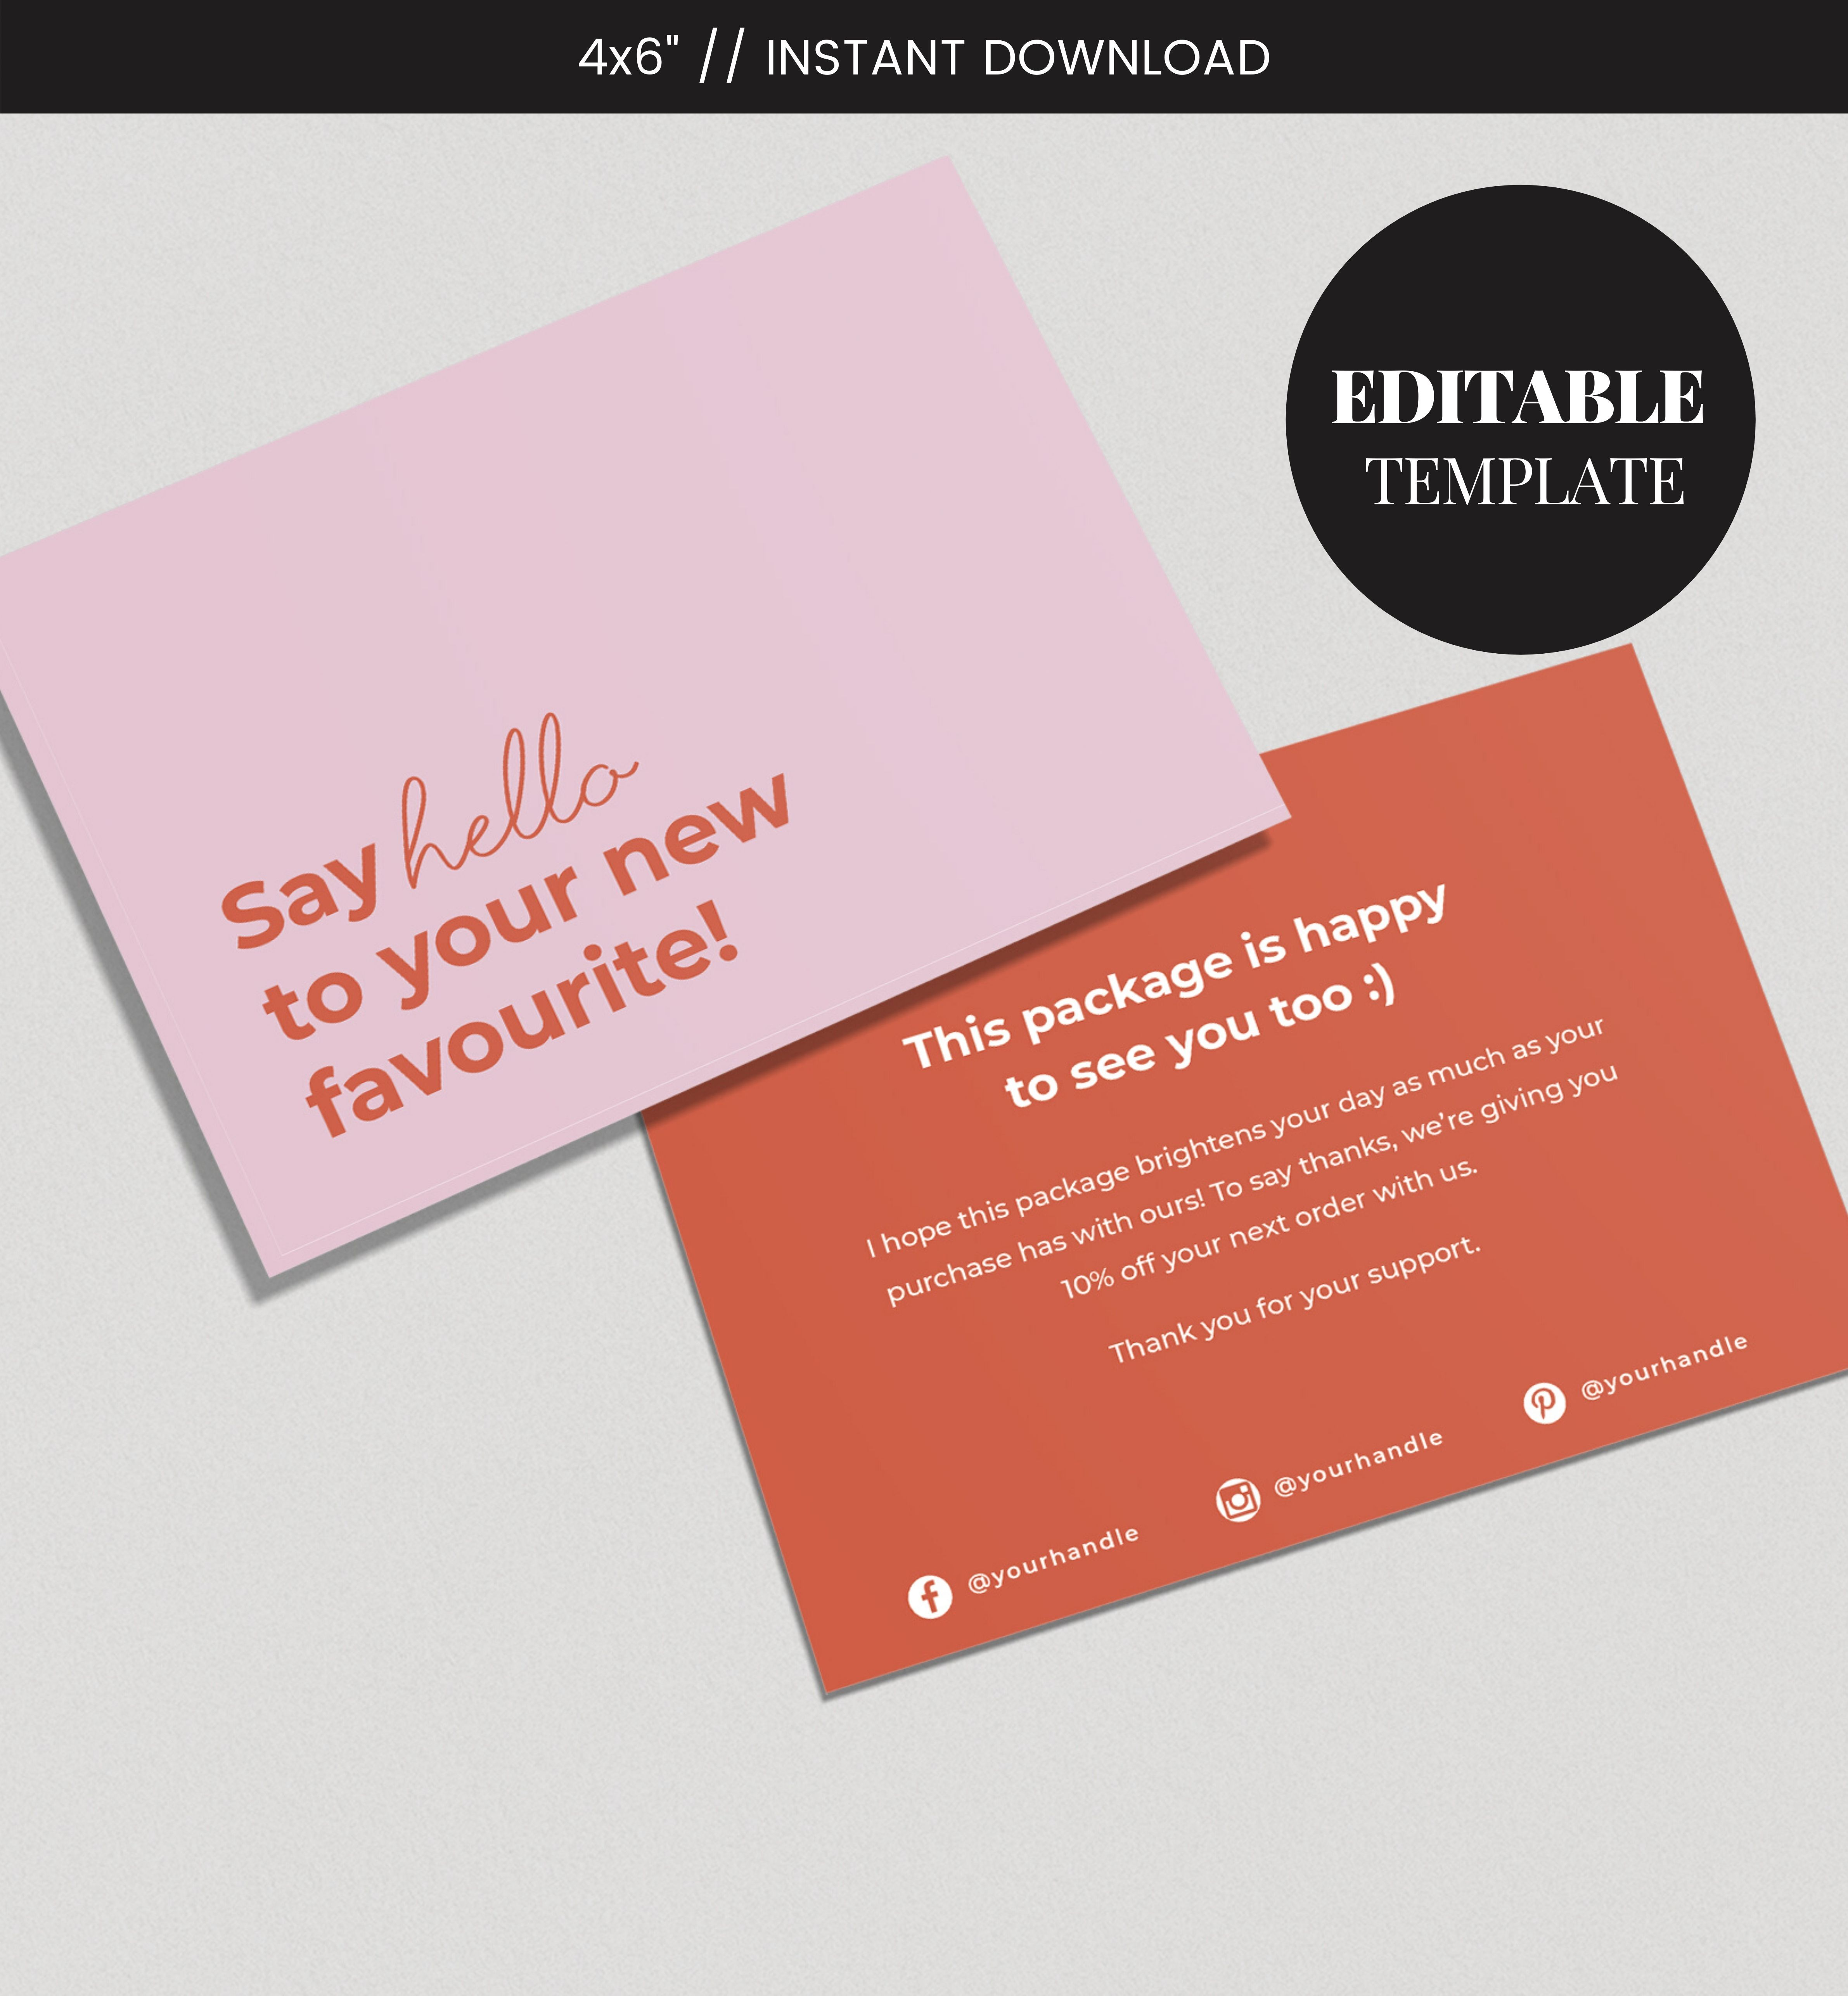 Editable Business Thank You Card Printable Cute Thank You Card Thanks For Your Purchase Small Business Thanks Customer Thank You Kartu Nama Bisnis Kartu Nama Ide Kemasan